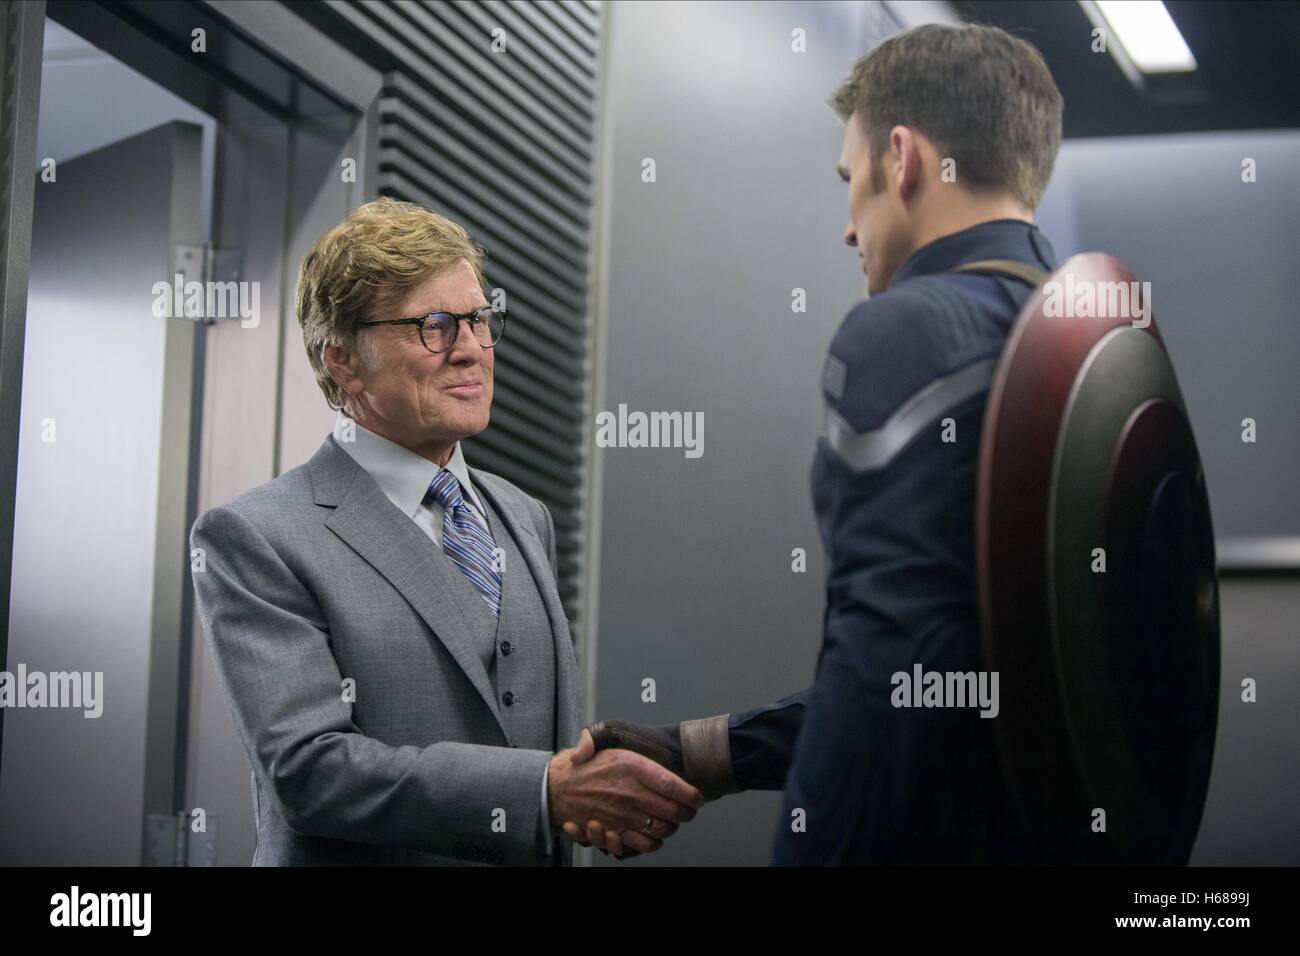 ROBERT REDFORD & CHRIS EVANS CAPTAIN AMERICA: THE WINTER SOLDIER (2014) - Stock Image